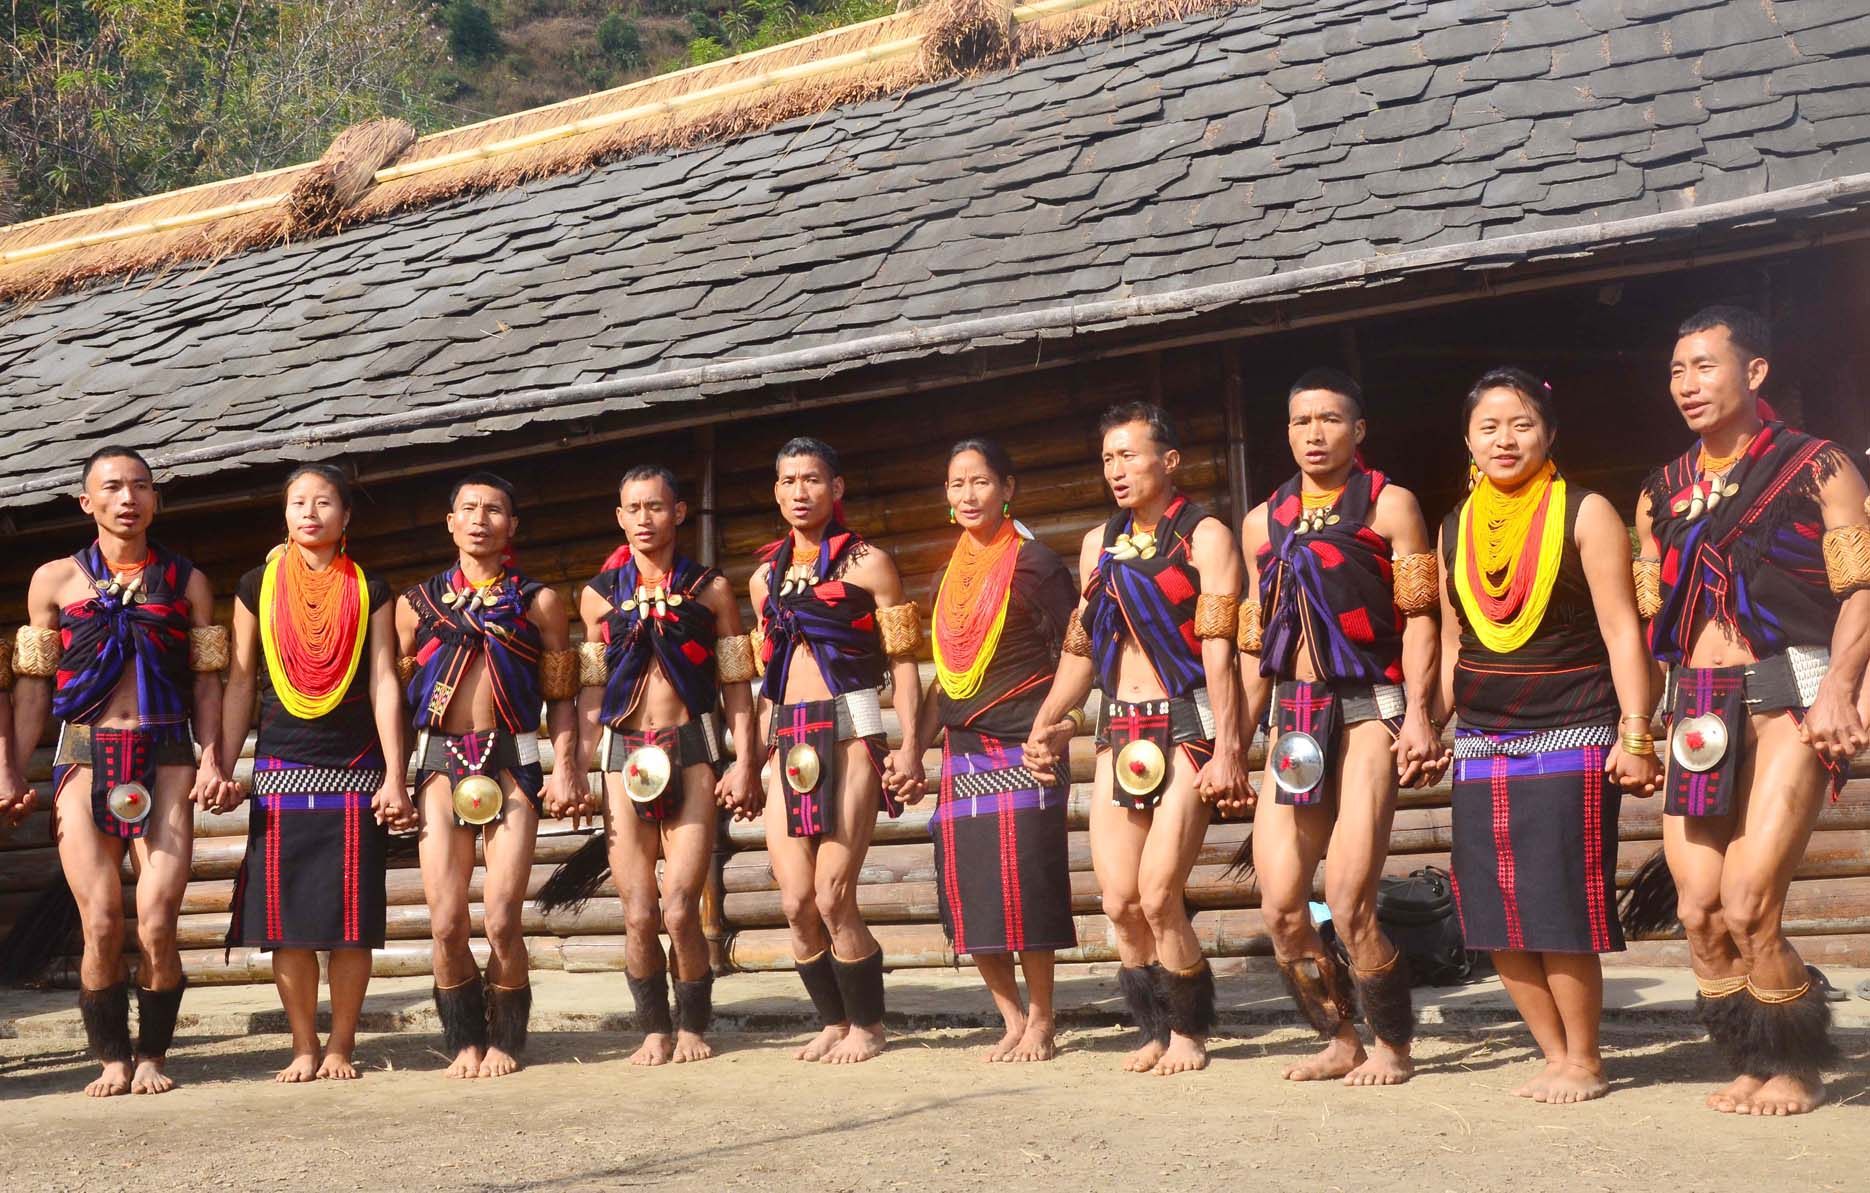 Naga tribesman perform a folk dance in front of their Morung on the second day of the state annual Hornbill Festival at Naga Heritage village Kisama, some 15 kms away from Kohima, Nagaland on Friday, December 02, 2016. Photo by Caisii Mao